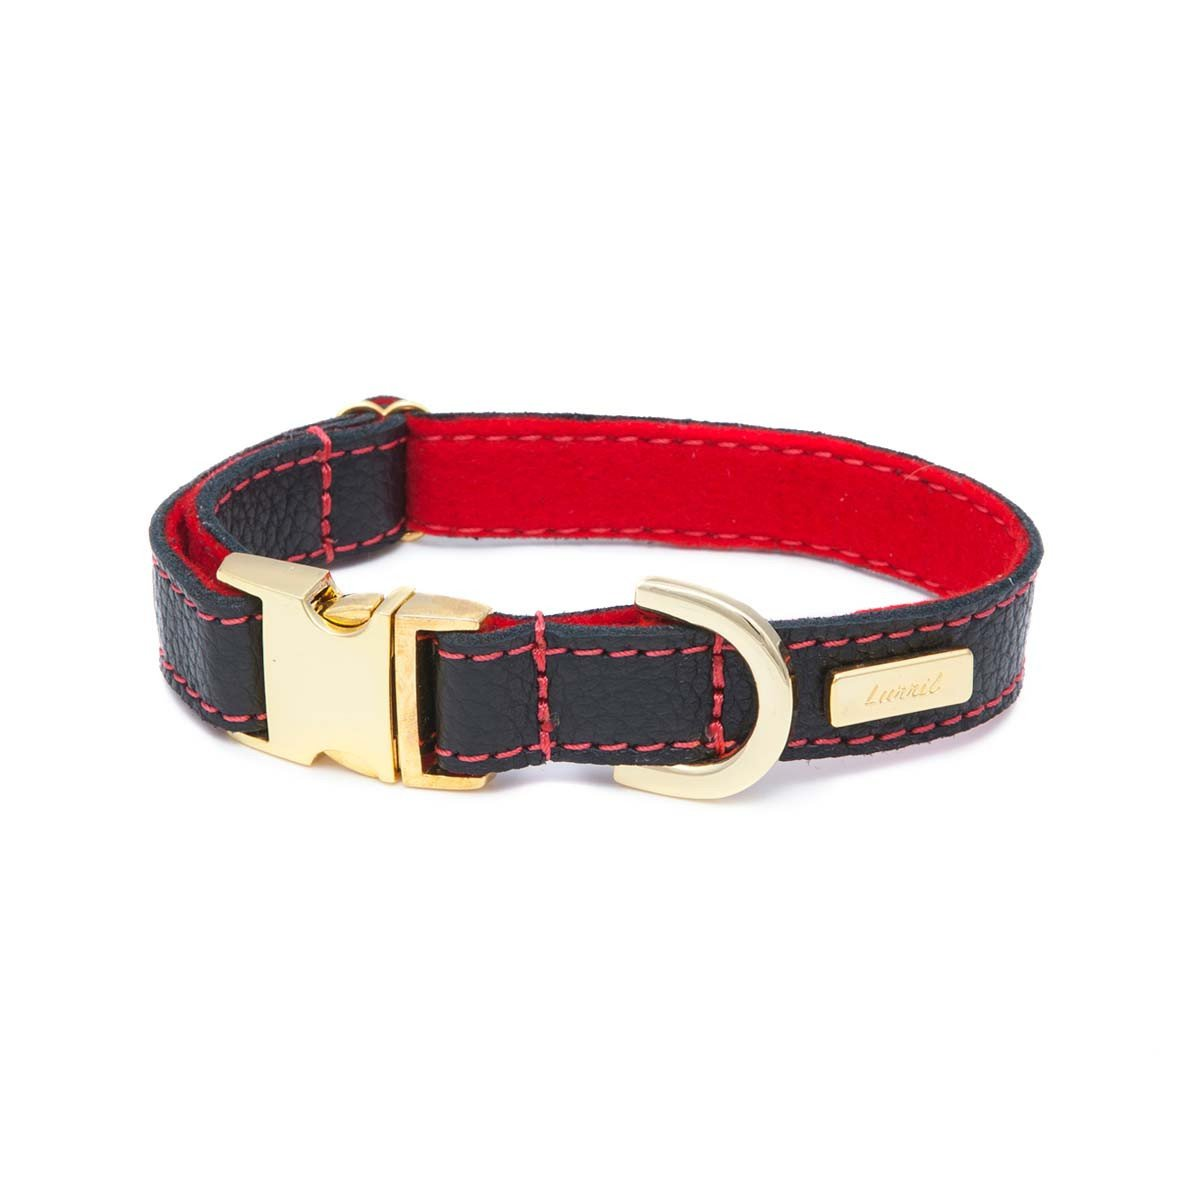 Black Leather Dog Collar for your Pomeranian - Durable & Soft Leather and Soft Wool Lining